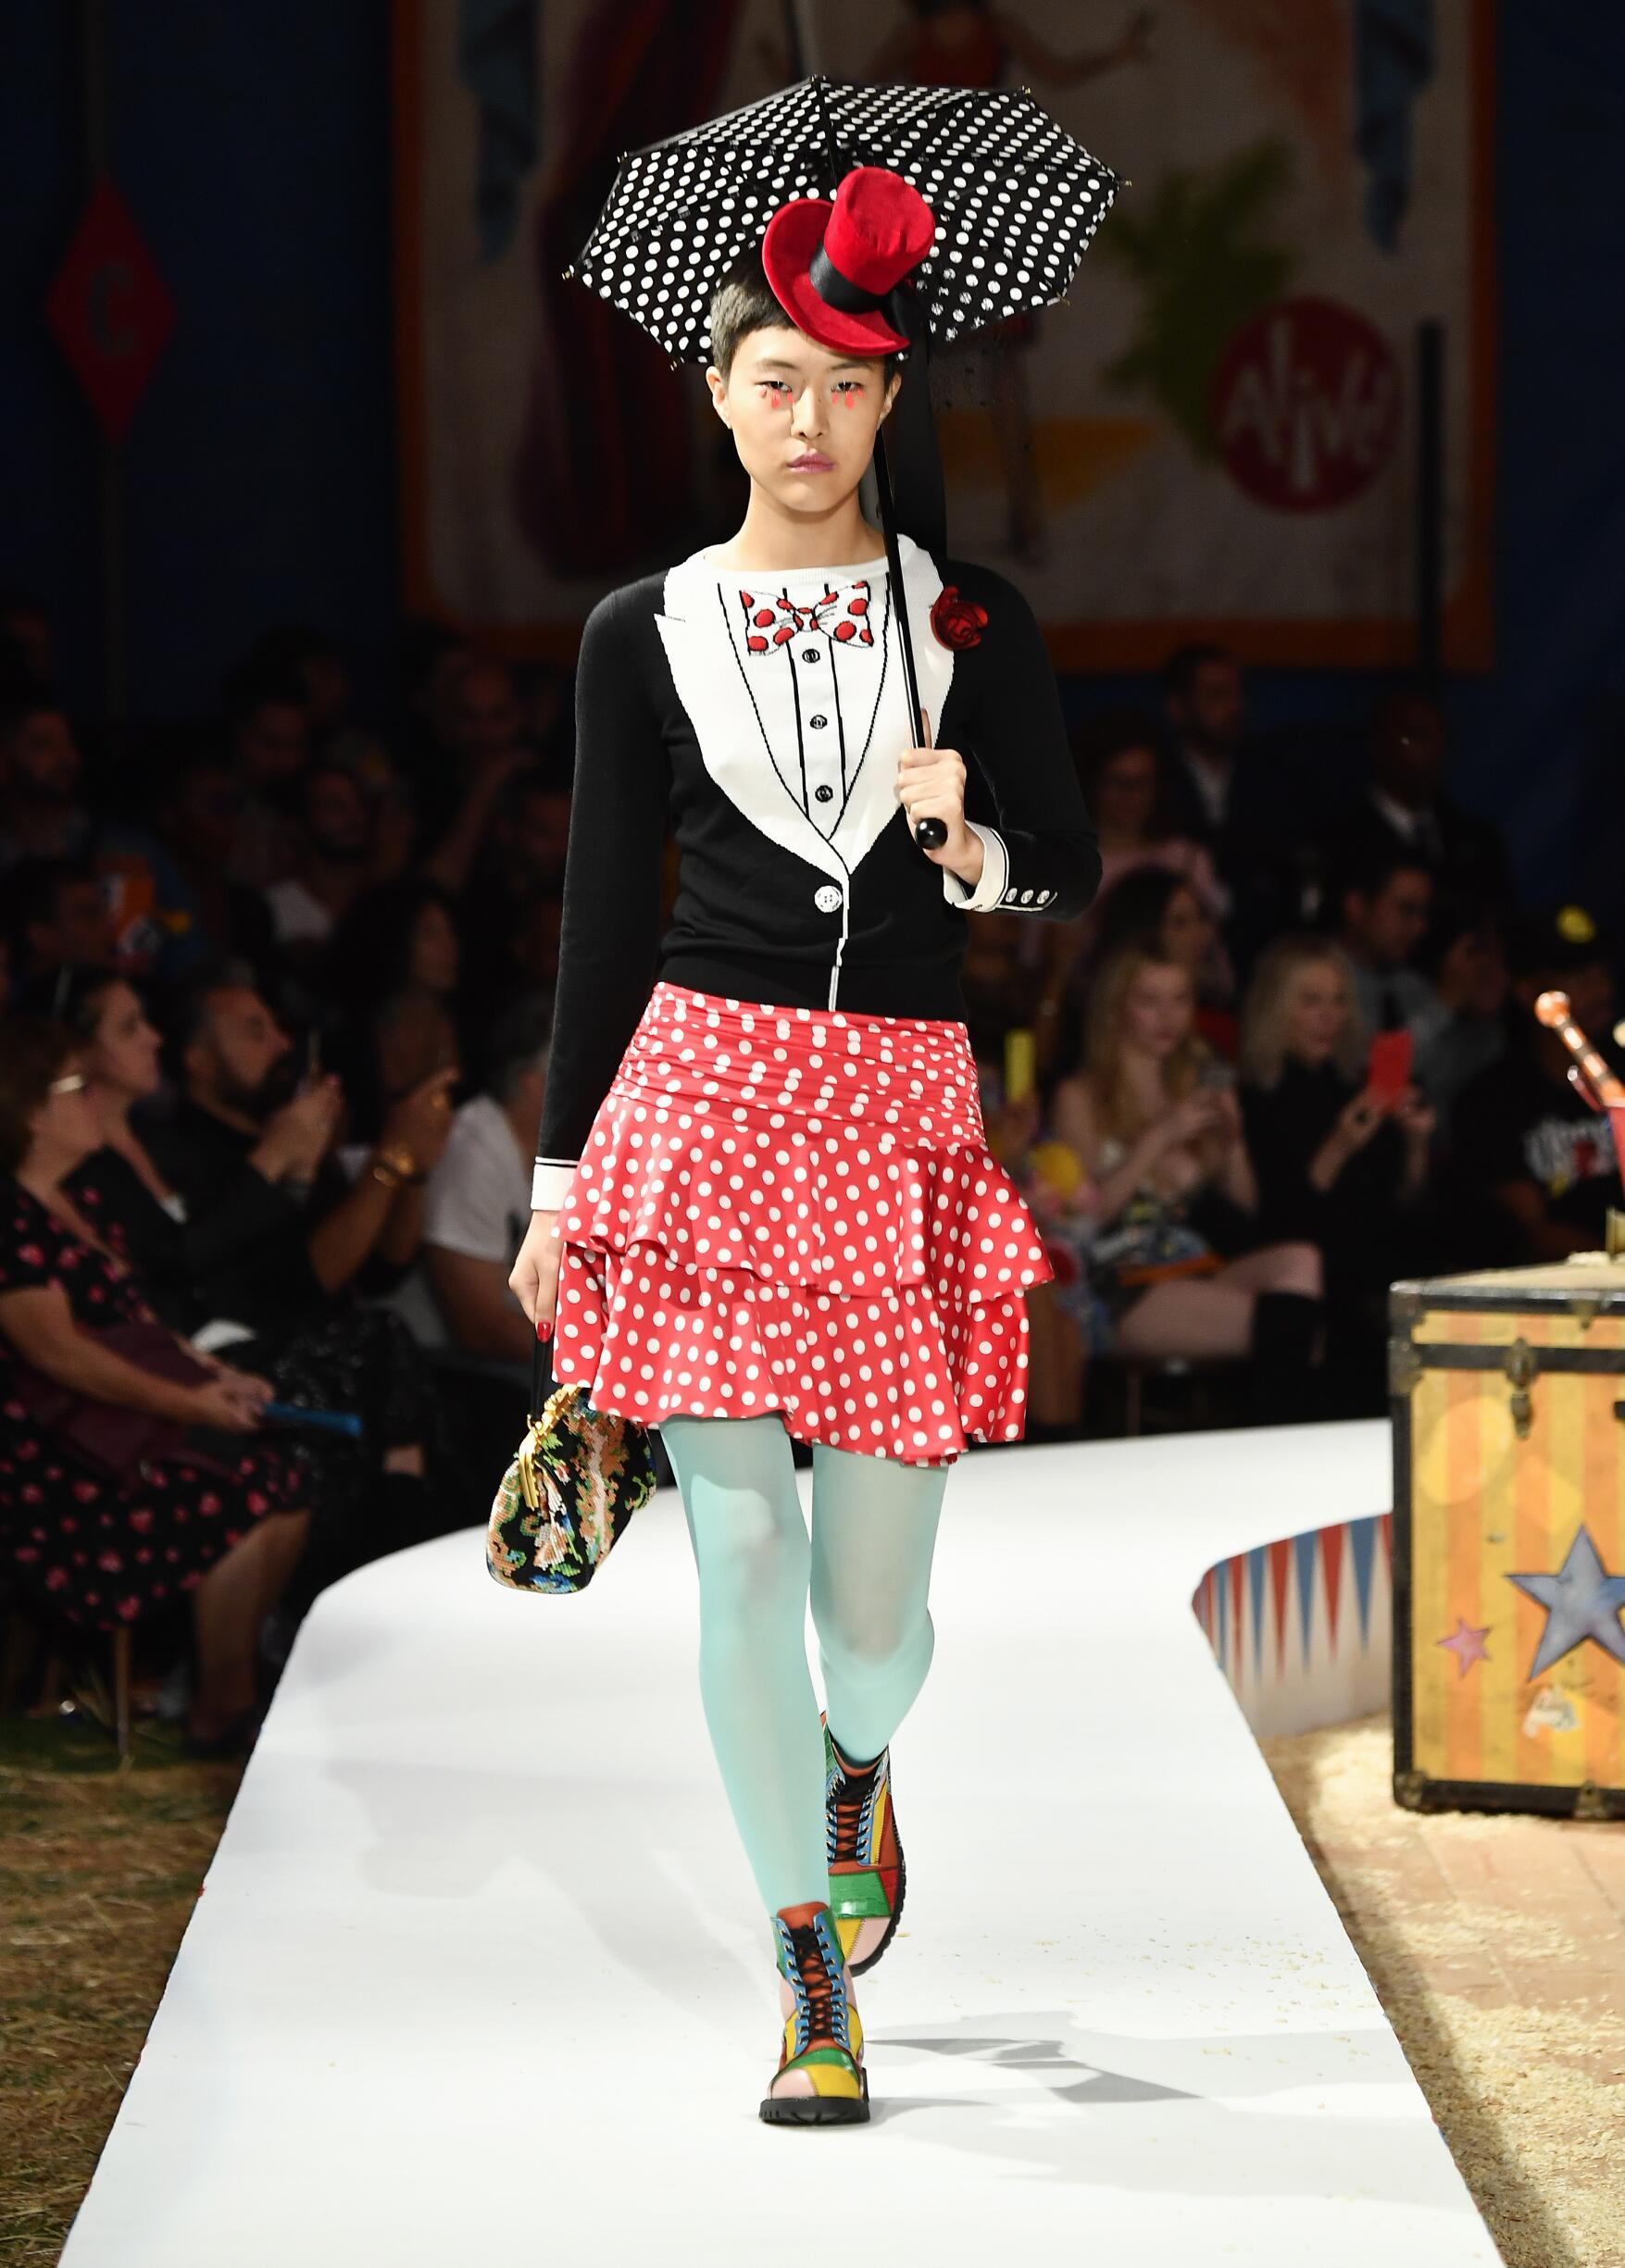 Moschino Spring Summer 2019 Menswear and Women's Resort Collection Look 12 Los Angeles